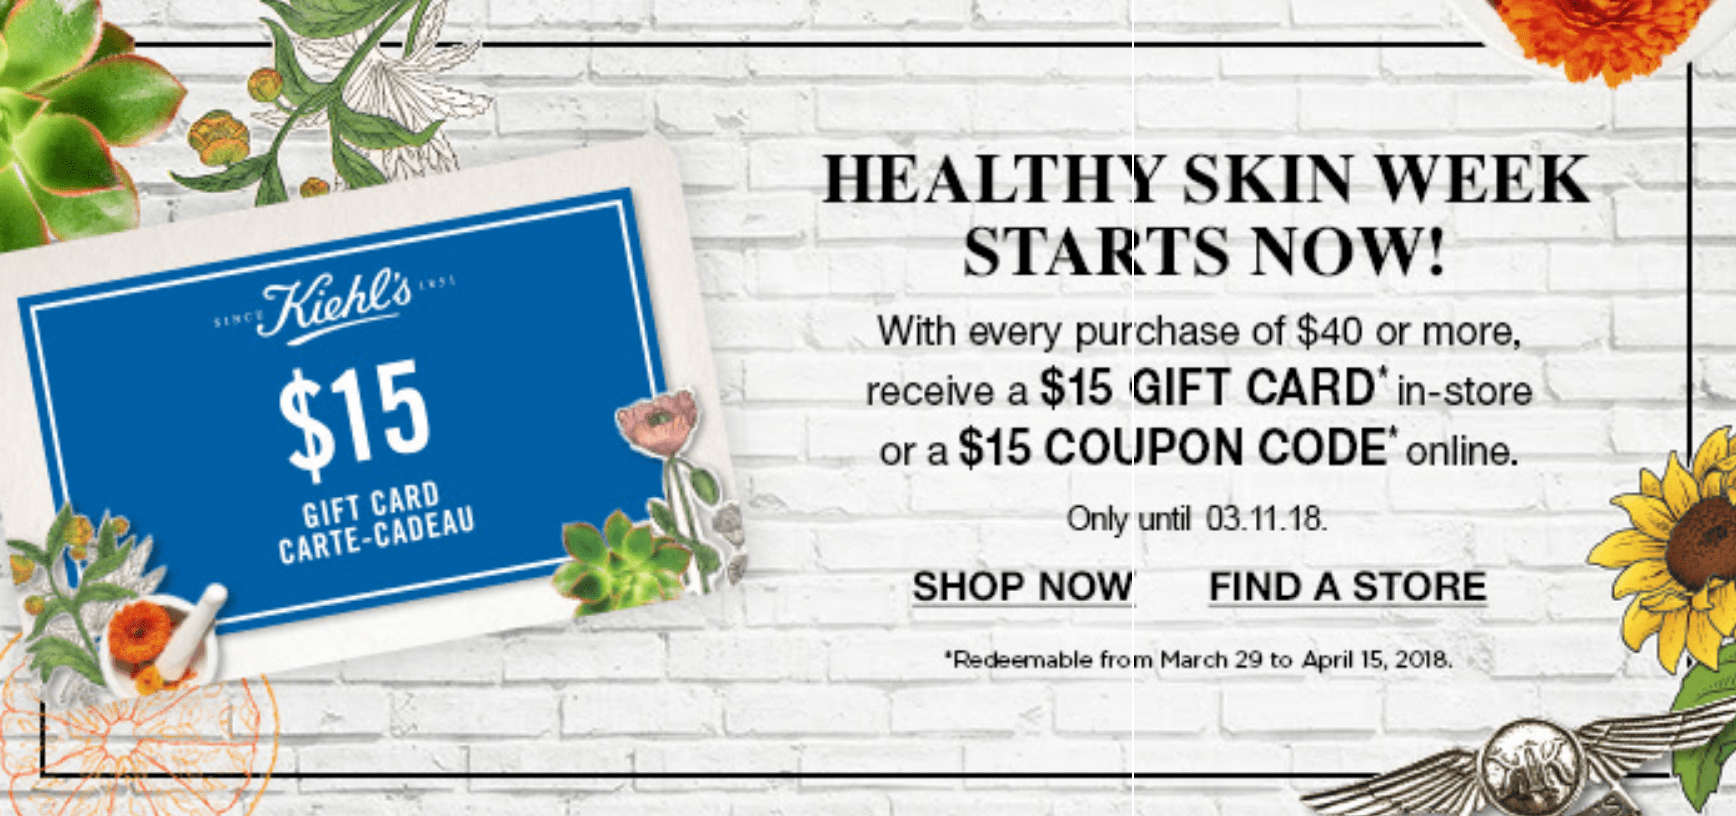 Kiehl S Gift Card Codes